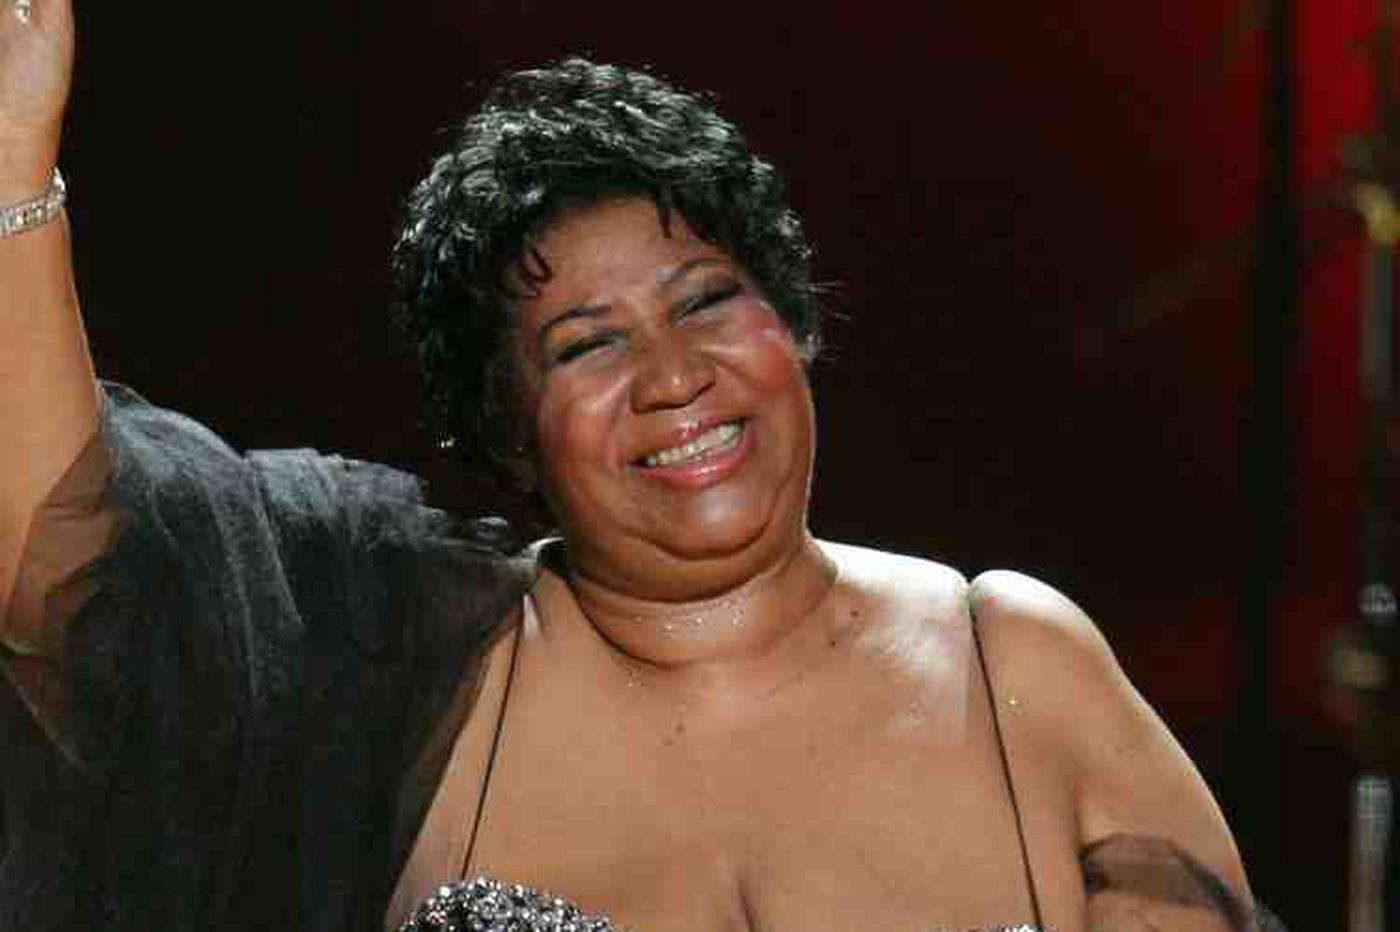 Tattle: Speculation about ailing Aretha Franklin abounds